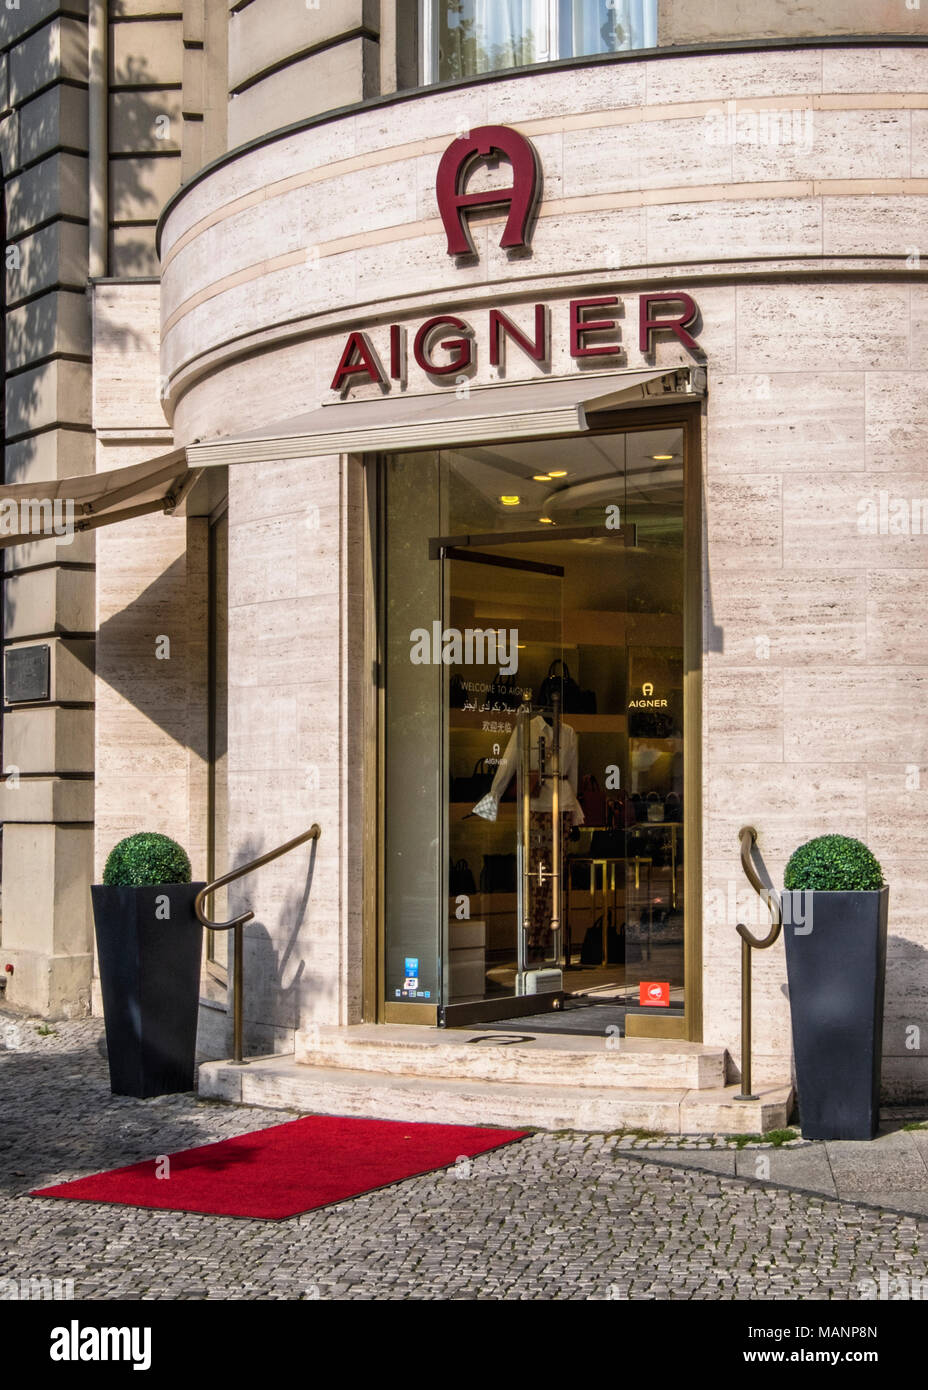 Berlin, Charlottenburg. Aignor store selling high-end leather goods, bags & acceesories on Kurfürstendamm shopping street - Stock Image